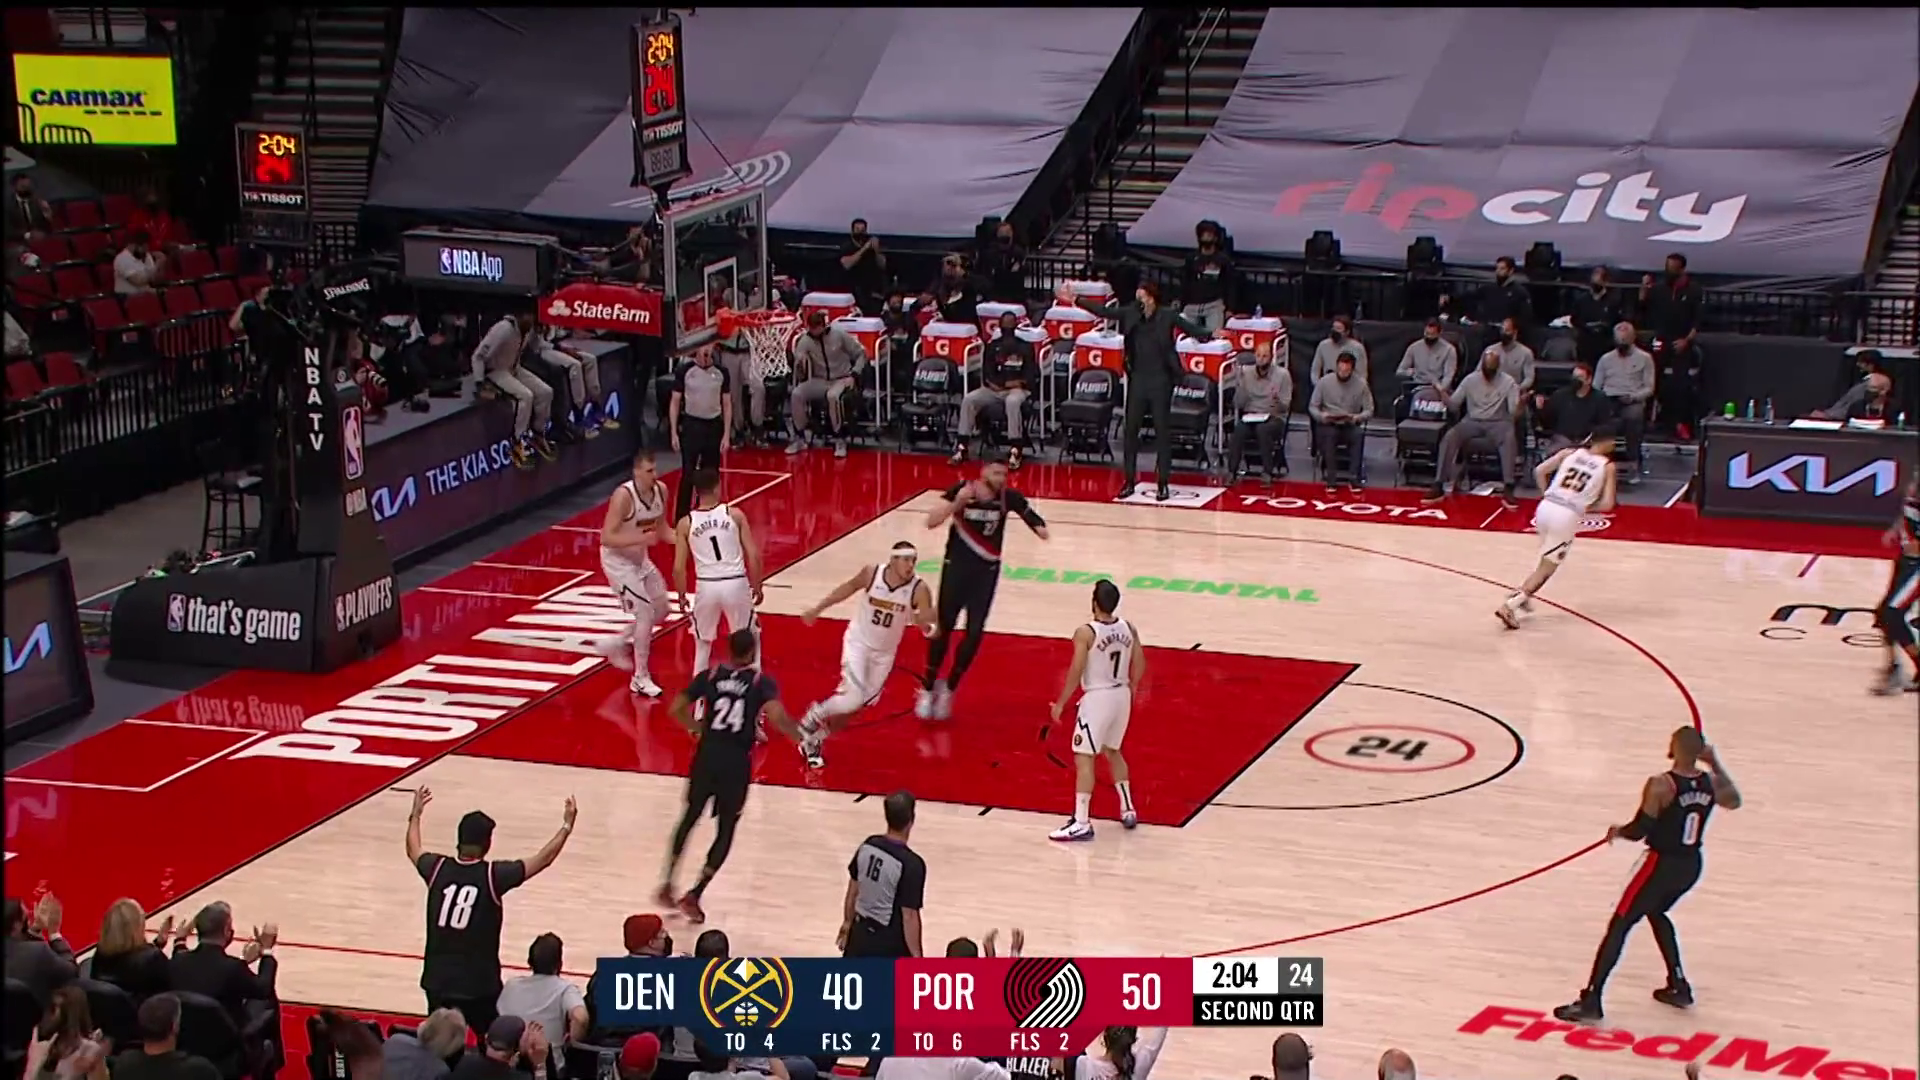 Trail Blazers 115, Nuggets 95 | McDonalds Game 4 Highlights